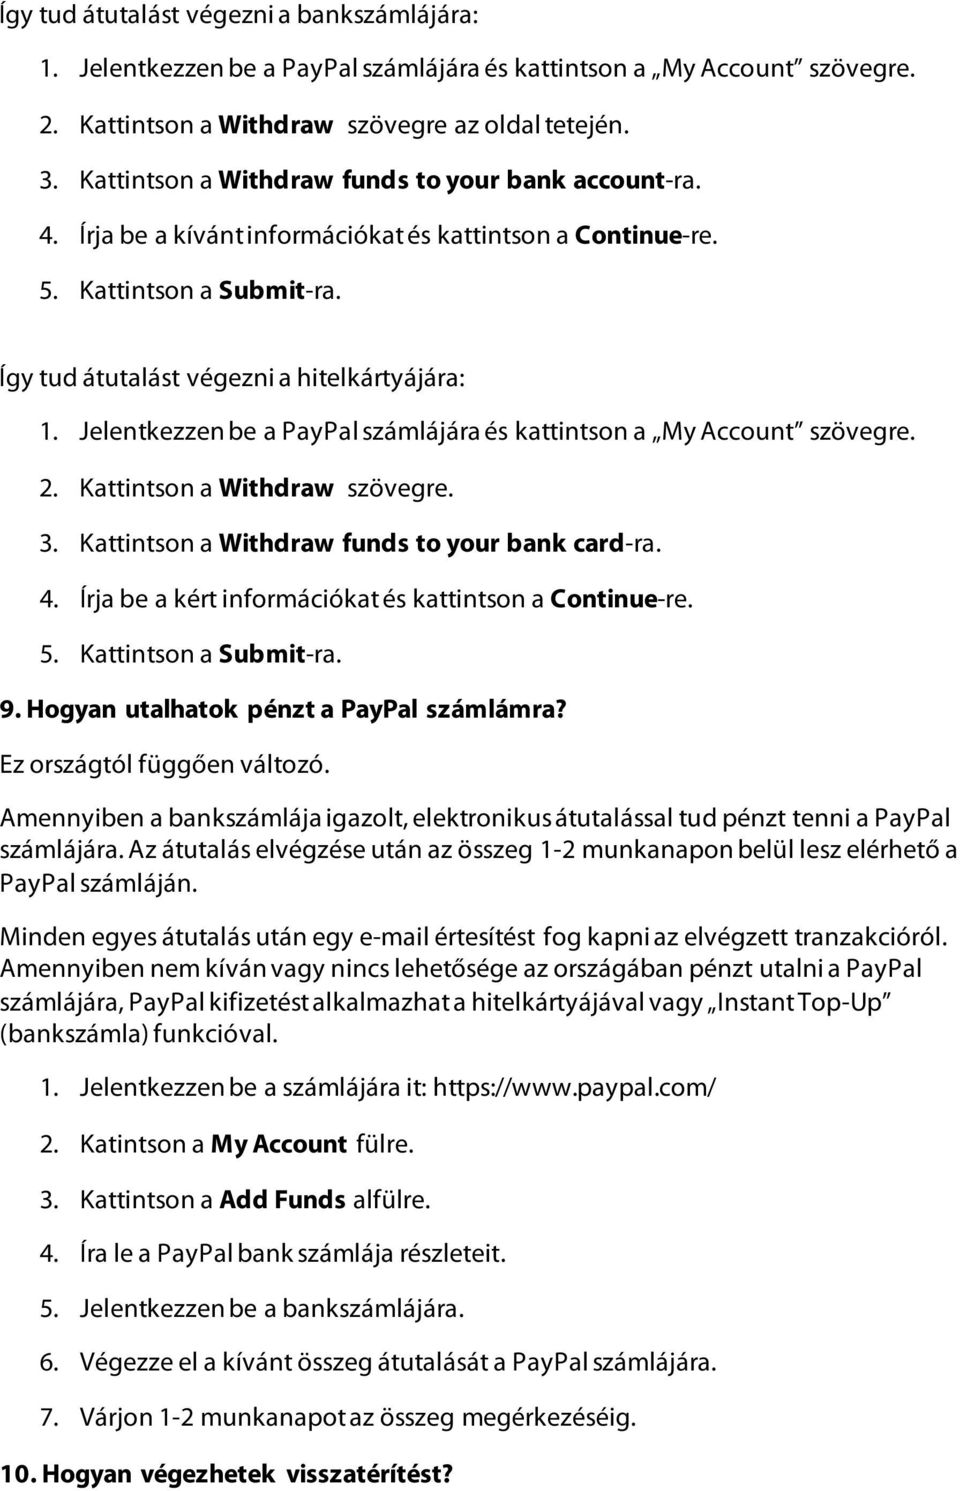 Jelentkezzen be a PayPal számlájára és kattintson a My Account szövegre. 2. Kattintson a Withdraw szövegre. 3. Kattintson a Withdraw funds to your bank card-ra. 4.